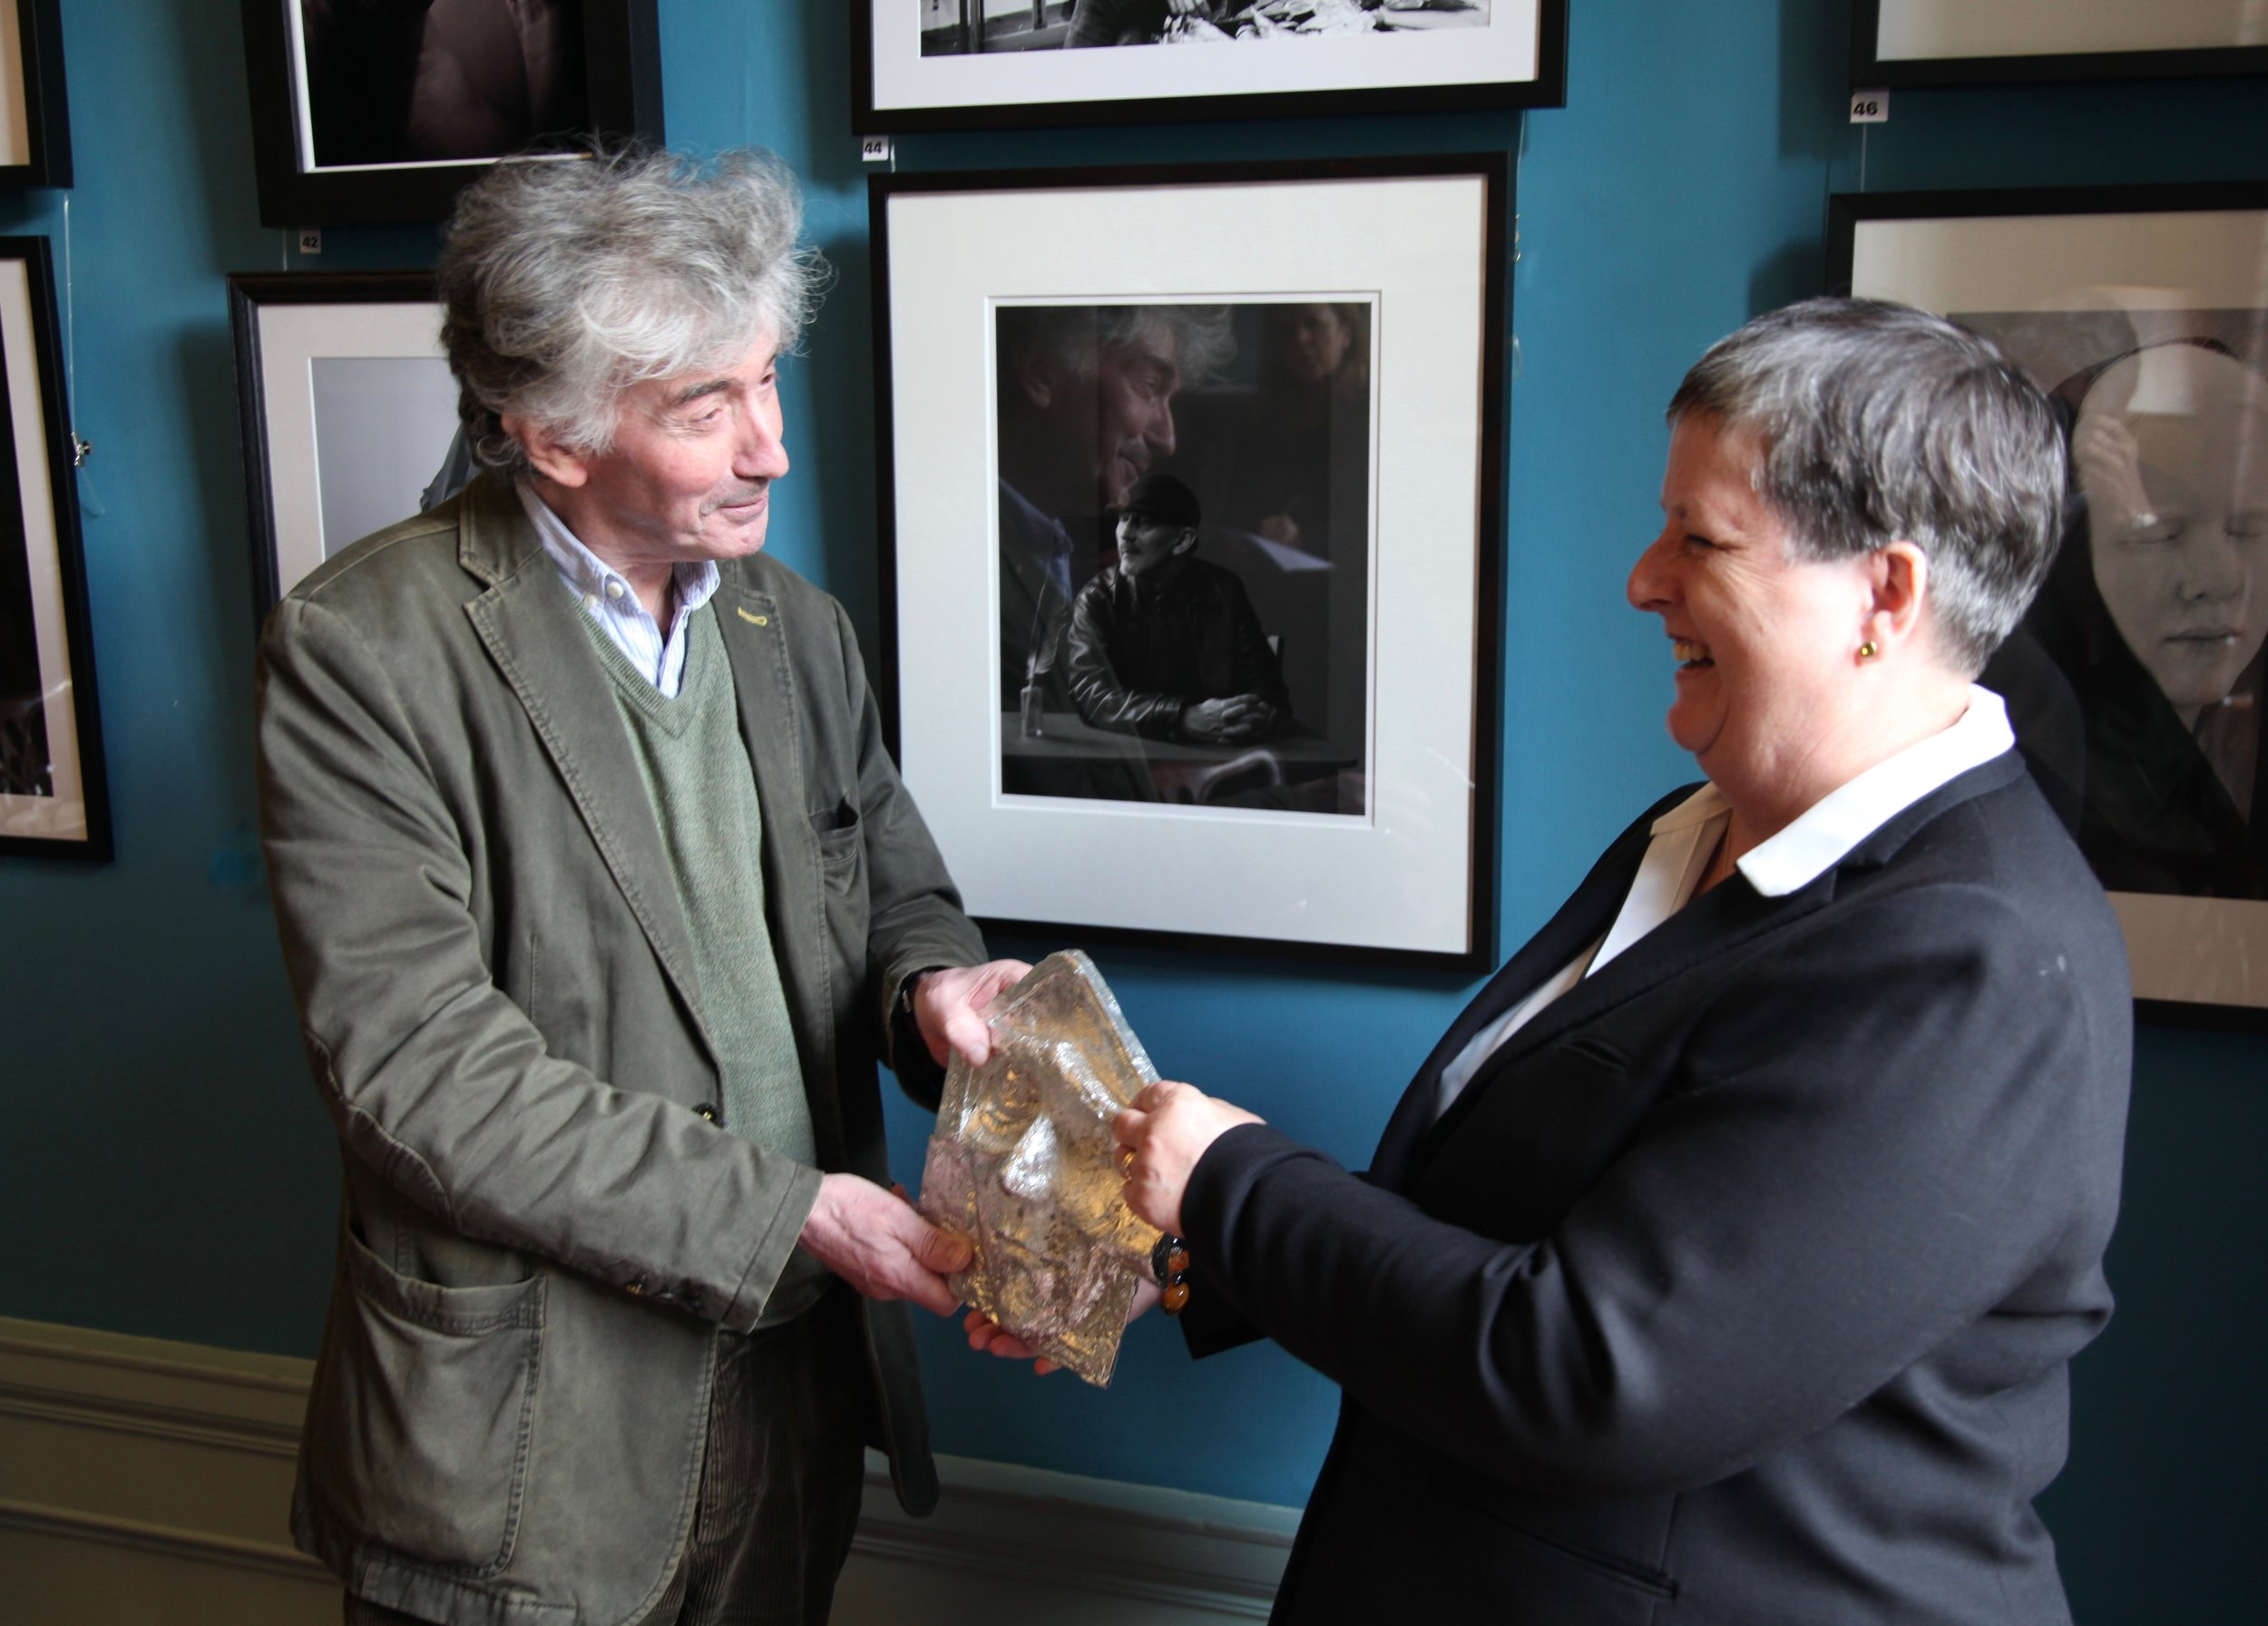 Robin Gillanders receives the Richard Coward SPA in Photography from Siobhán Coward, chair of the SPA Photography Panel.